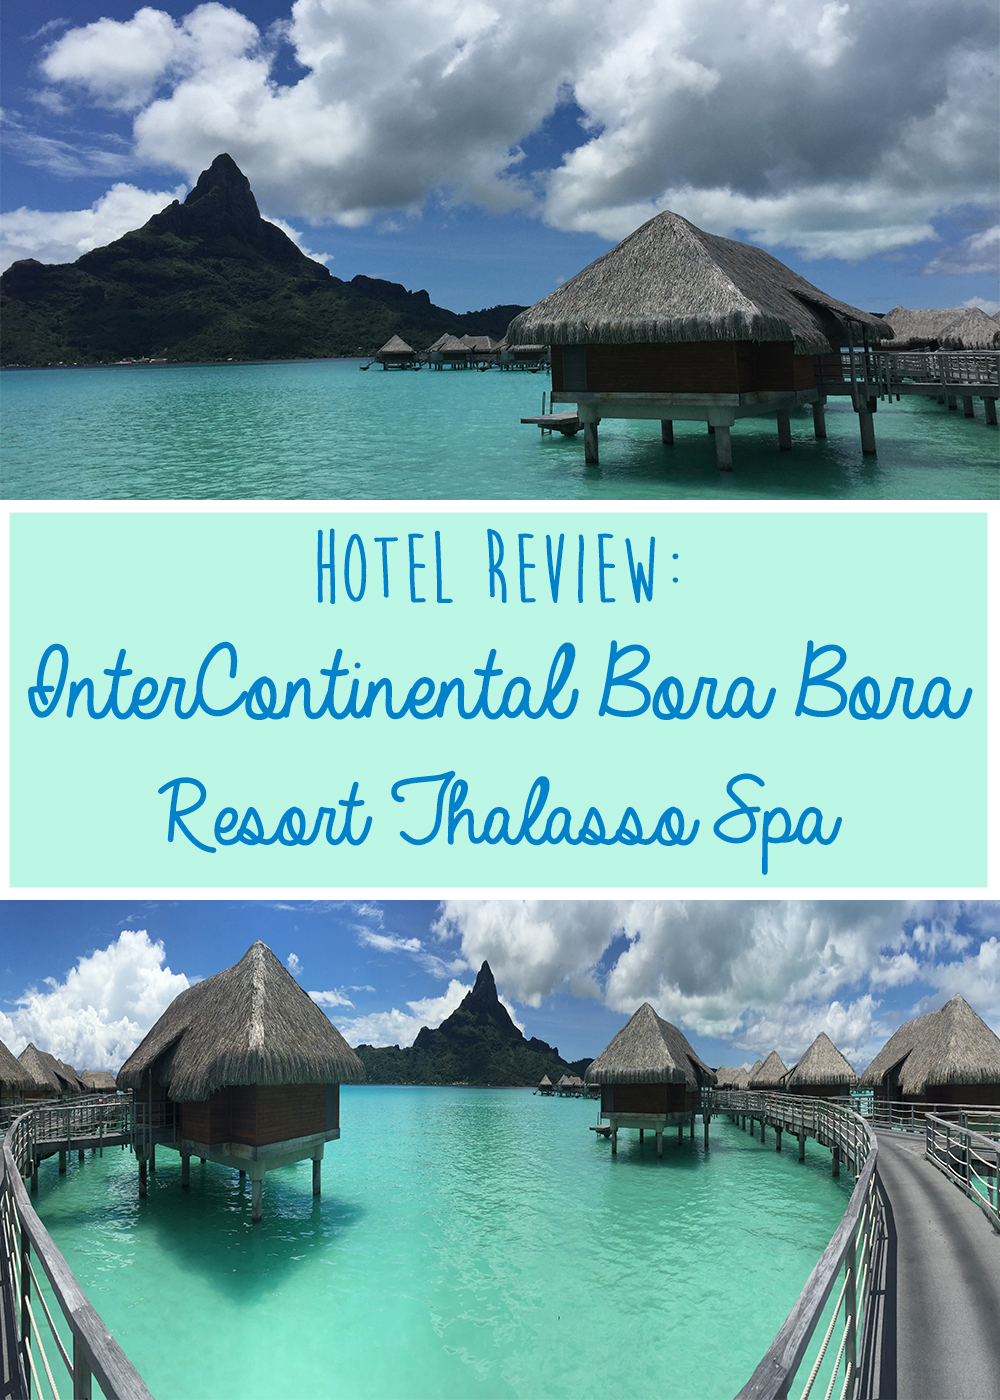 Intercontinental Bora Bora Resort Thalasso Spa Hotel Review - Wandering Jokas Travel & Ice Cream Blog